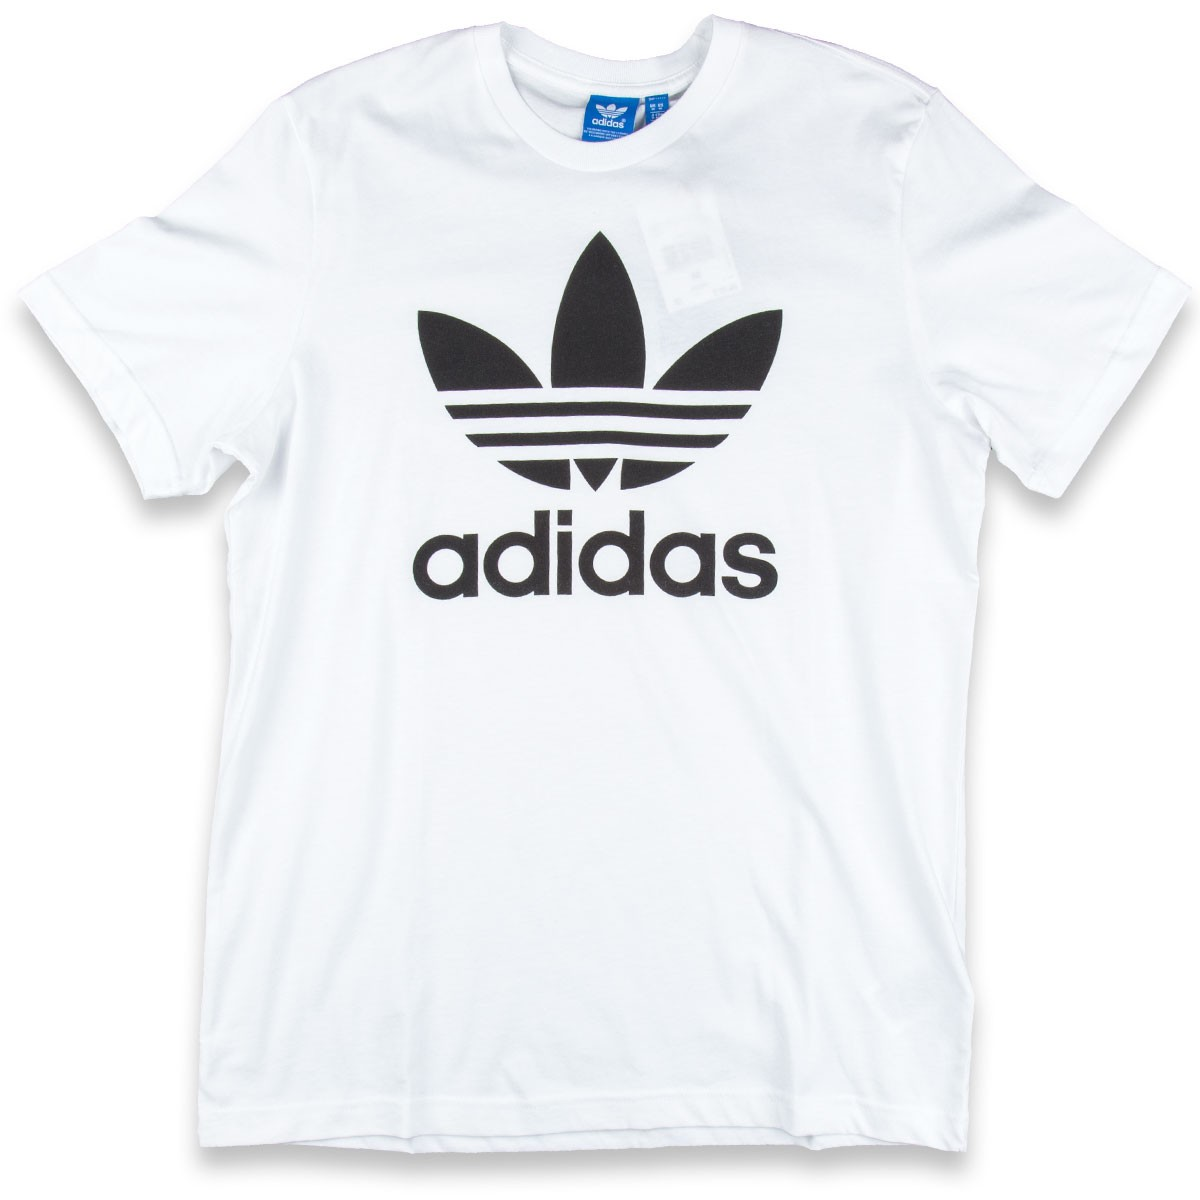 Adidas original trefoil t shirt white for Adidas lotus t shirt